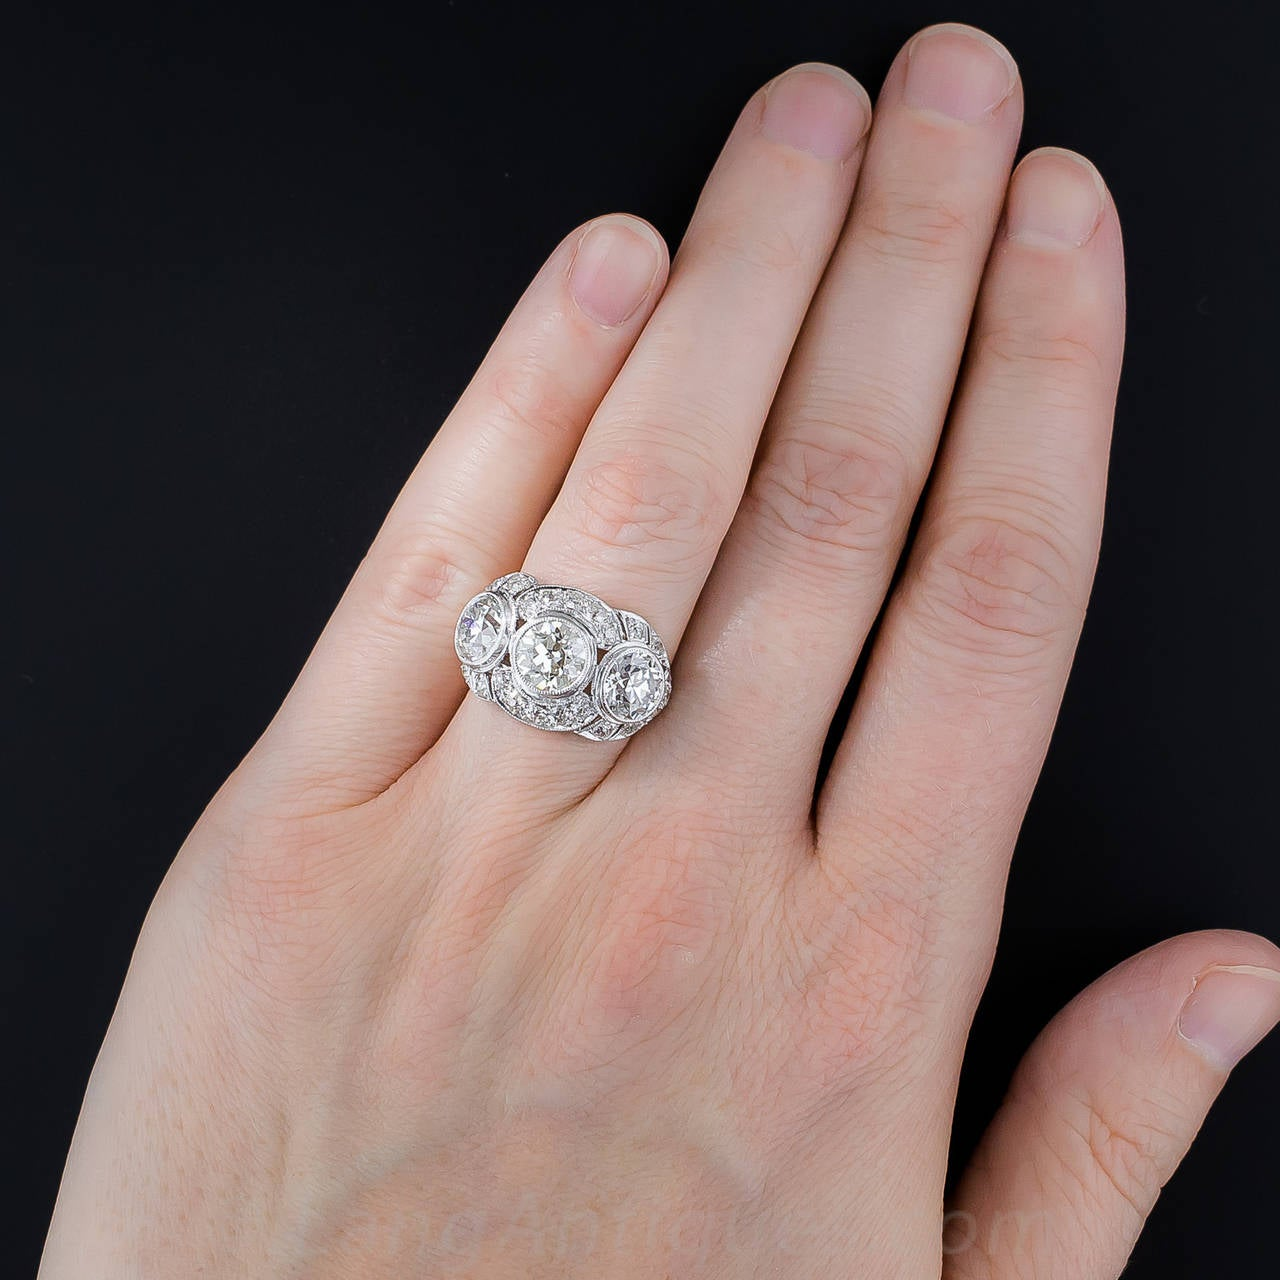 A Critical Look at Diamond Sizes on Hands And Costs